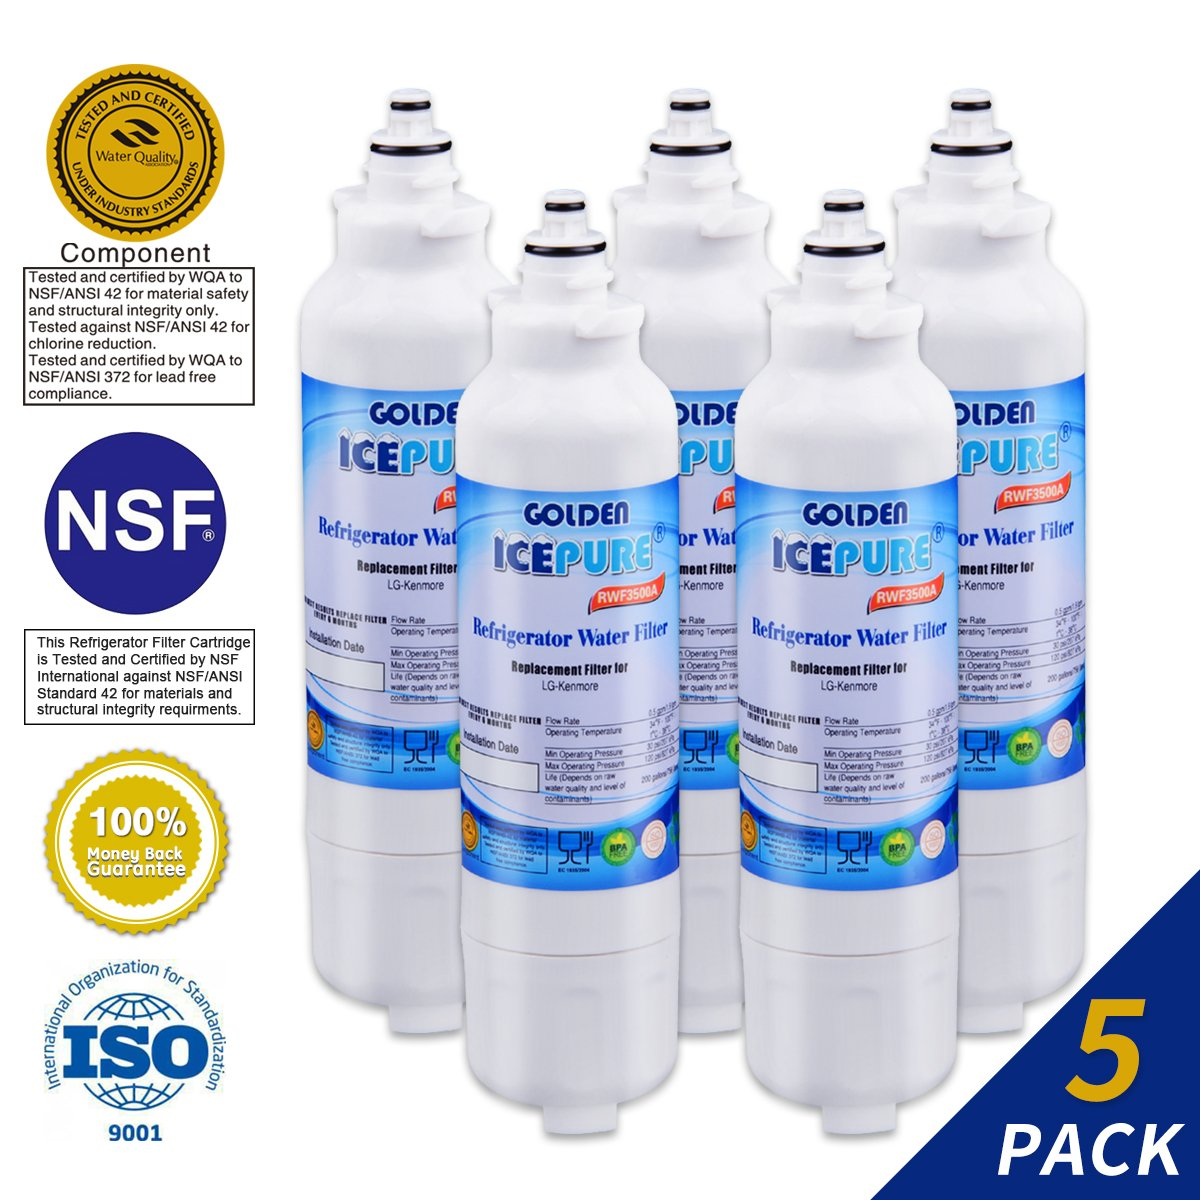 Golden Icepure LT800P Refrigerator Water Filter Replacement for LG LT800P, Kenmore 46-9490, ADQ73613401, ADQ73613402 (5-Pack)